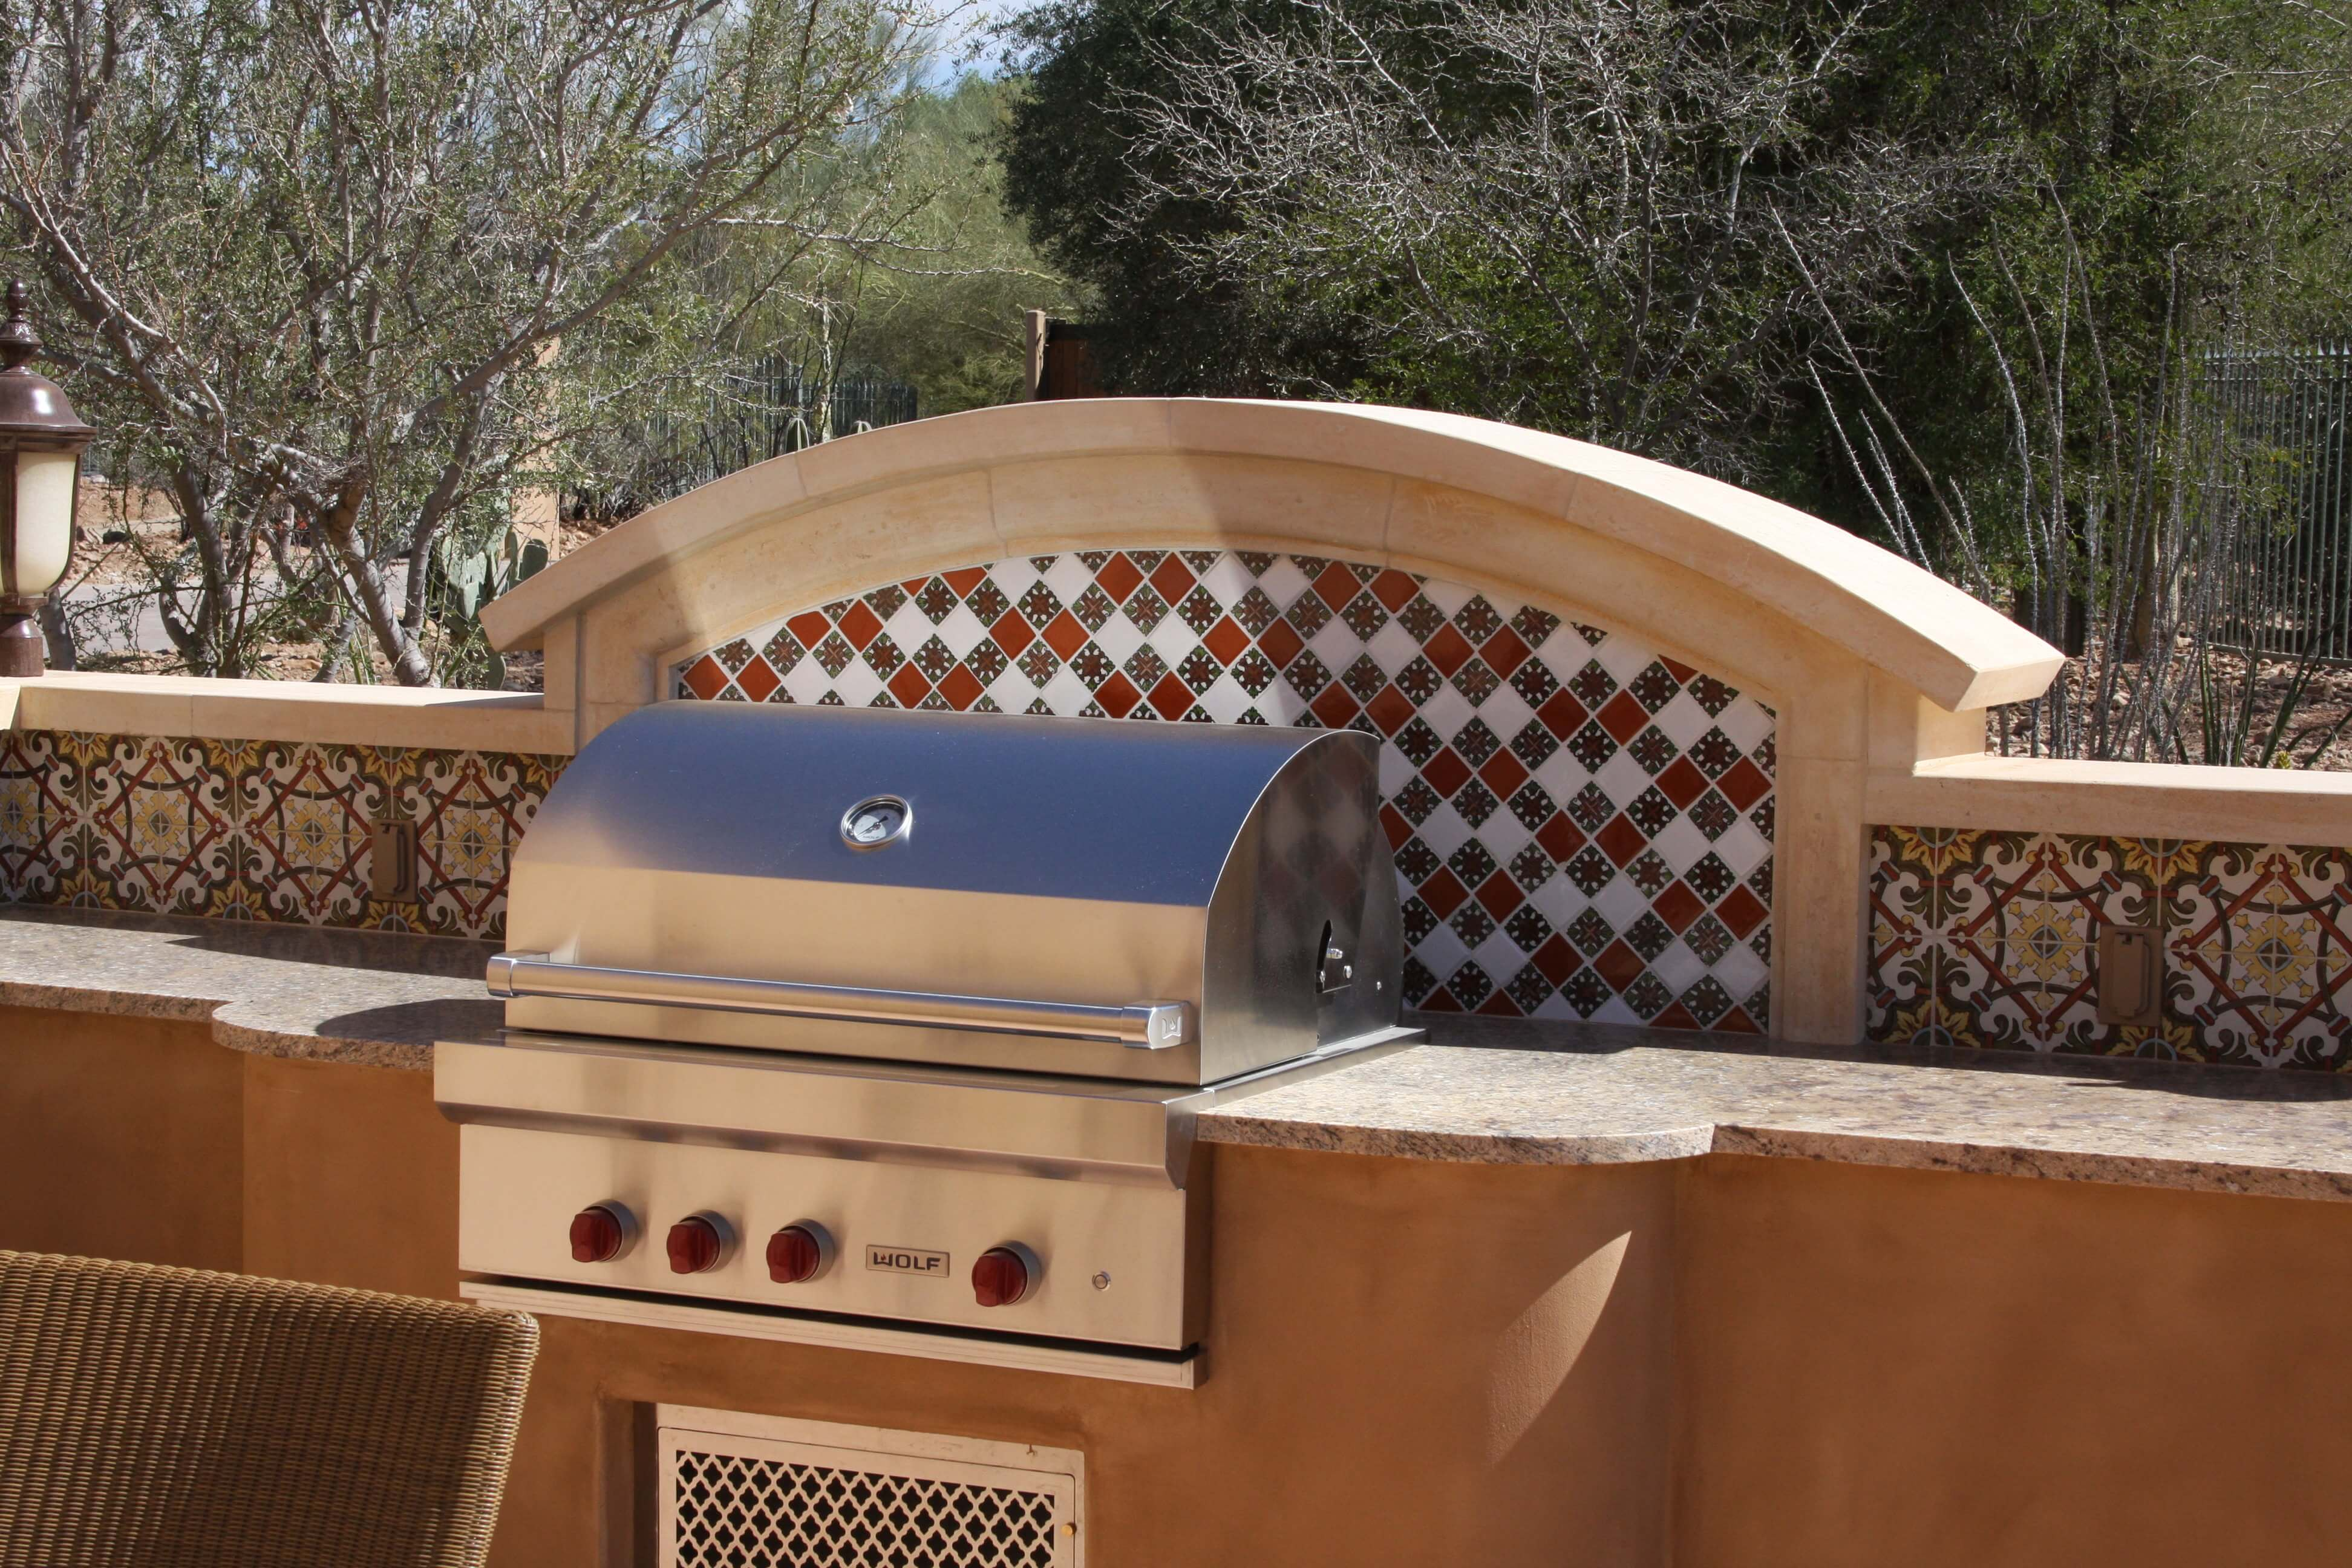 5-Curved-Limestone-Wall-Cap-with-Arched-Moulding-Surround-at-Barbecue-with-Deco-Tile-Backsplash